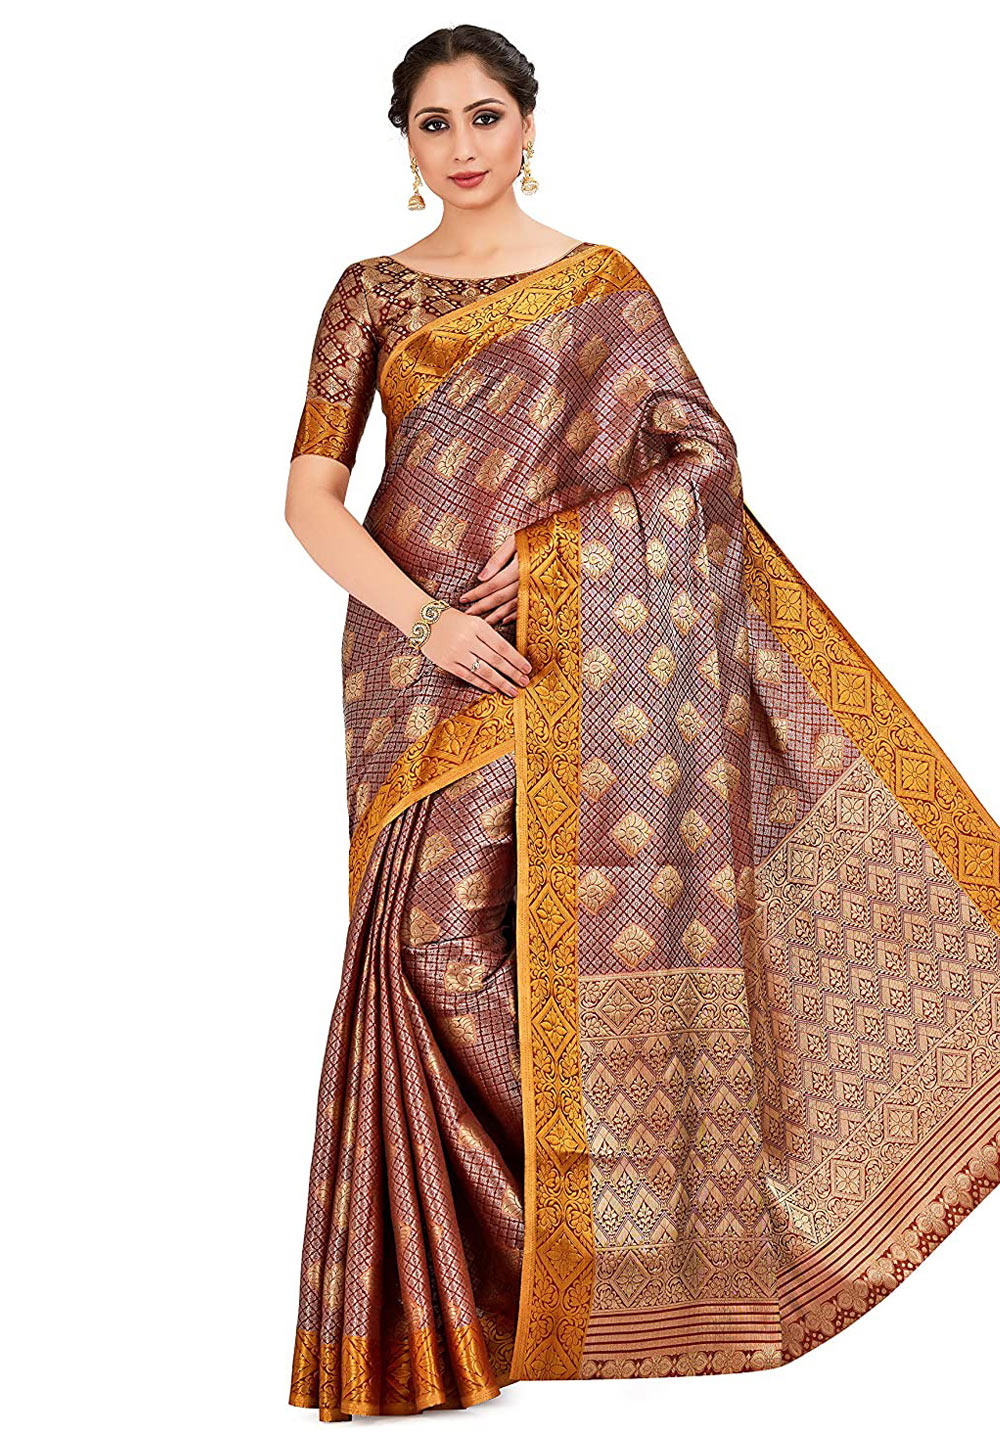 Brown Banarasi Saree With Blouse 201464